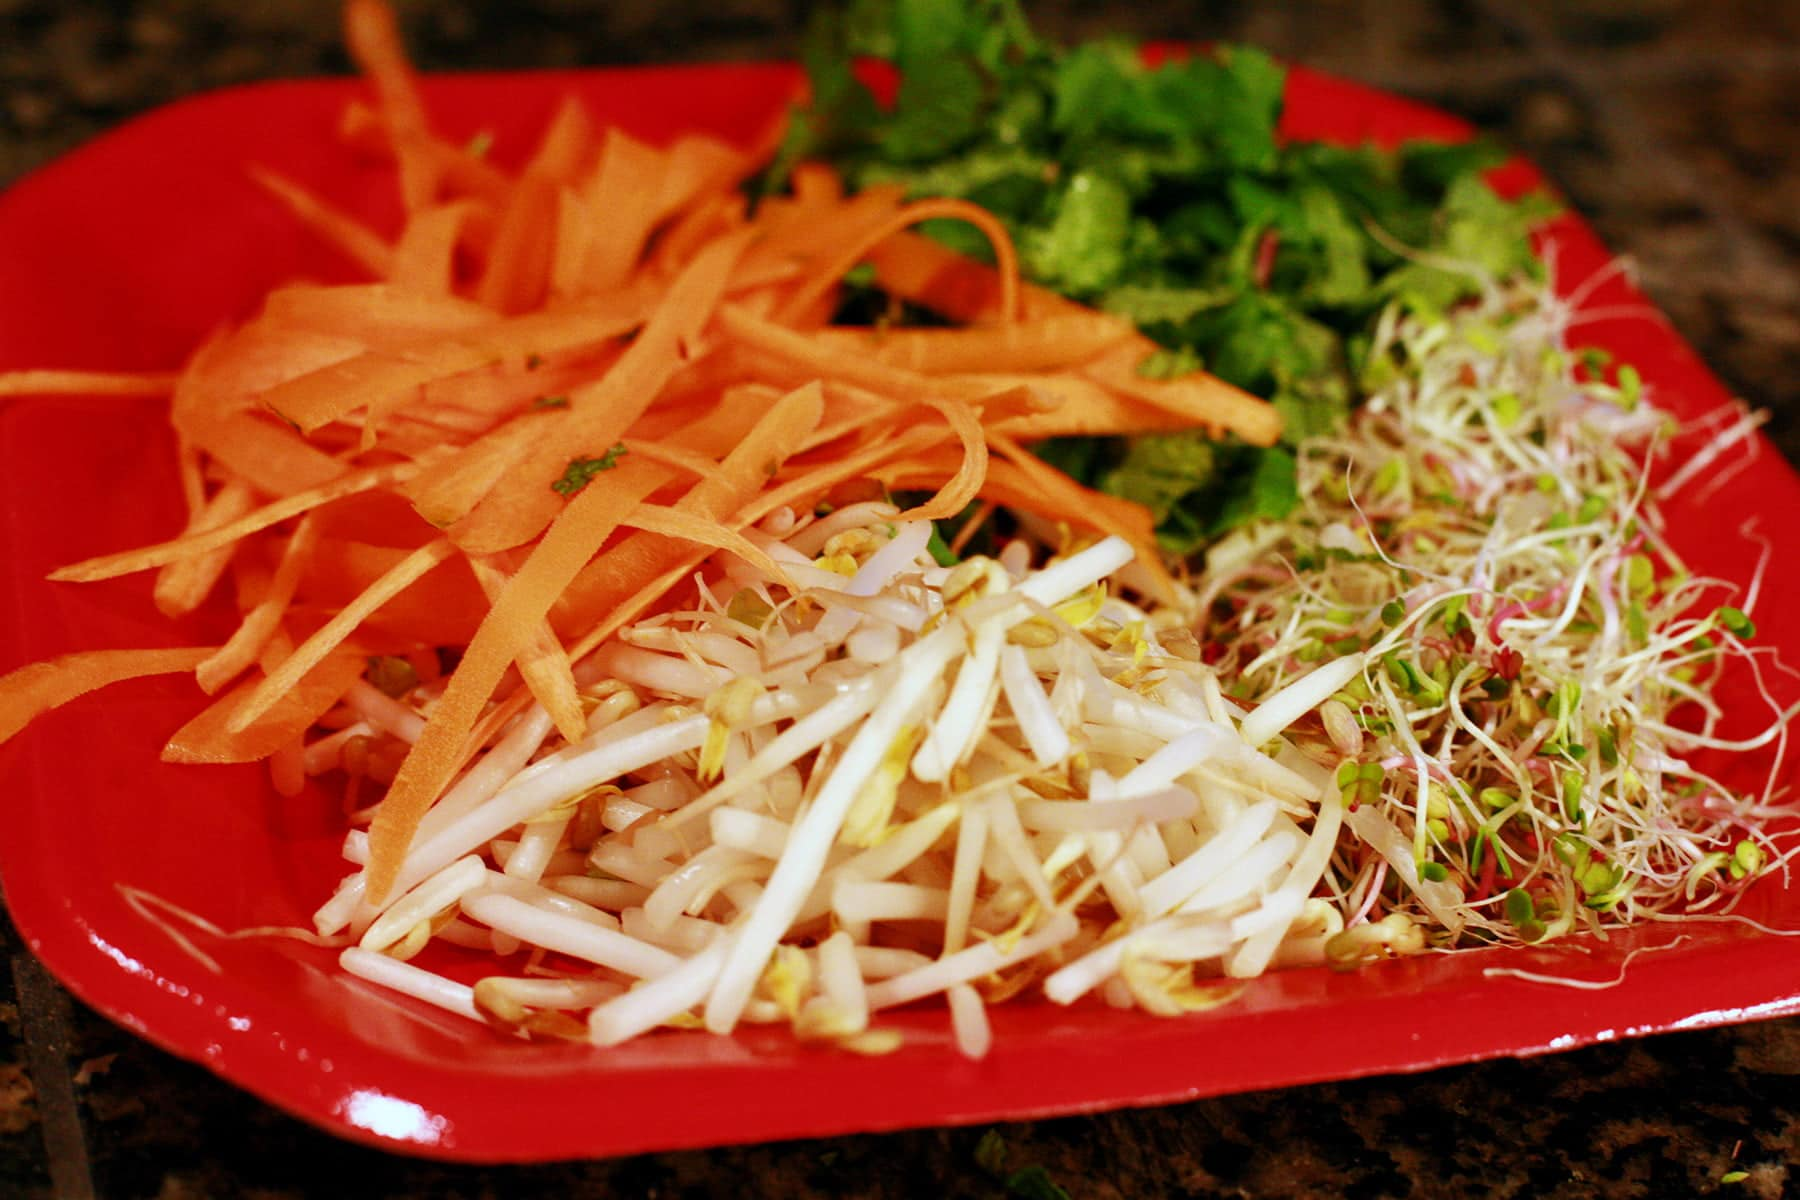 A red plate holds sections of fillings: ribbons of carrots, bean sprouts, cilantro and mint.